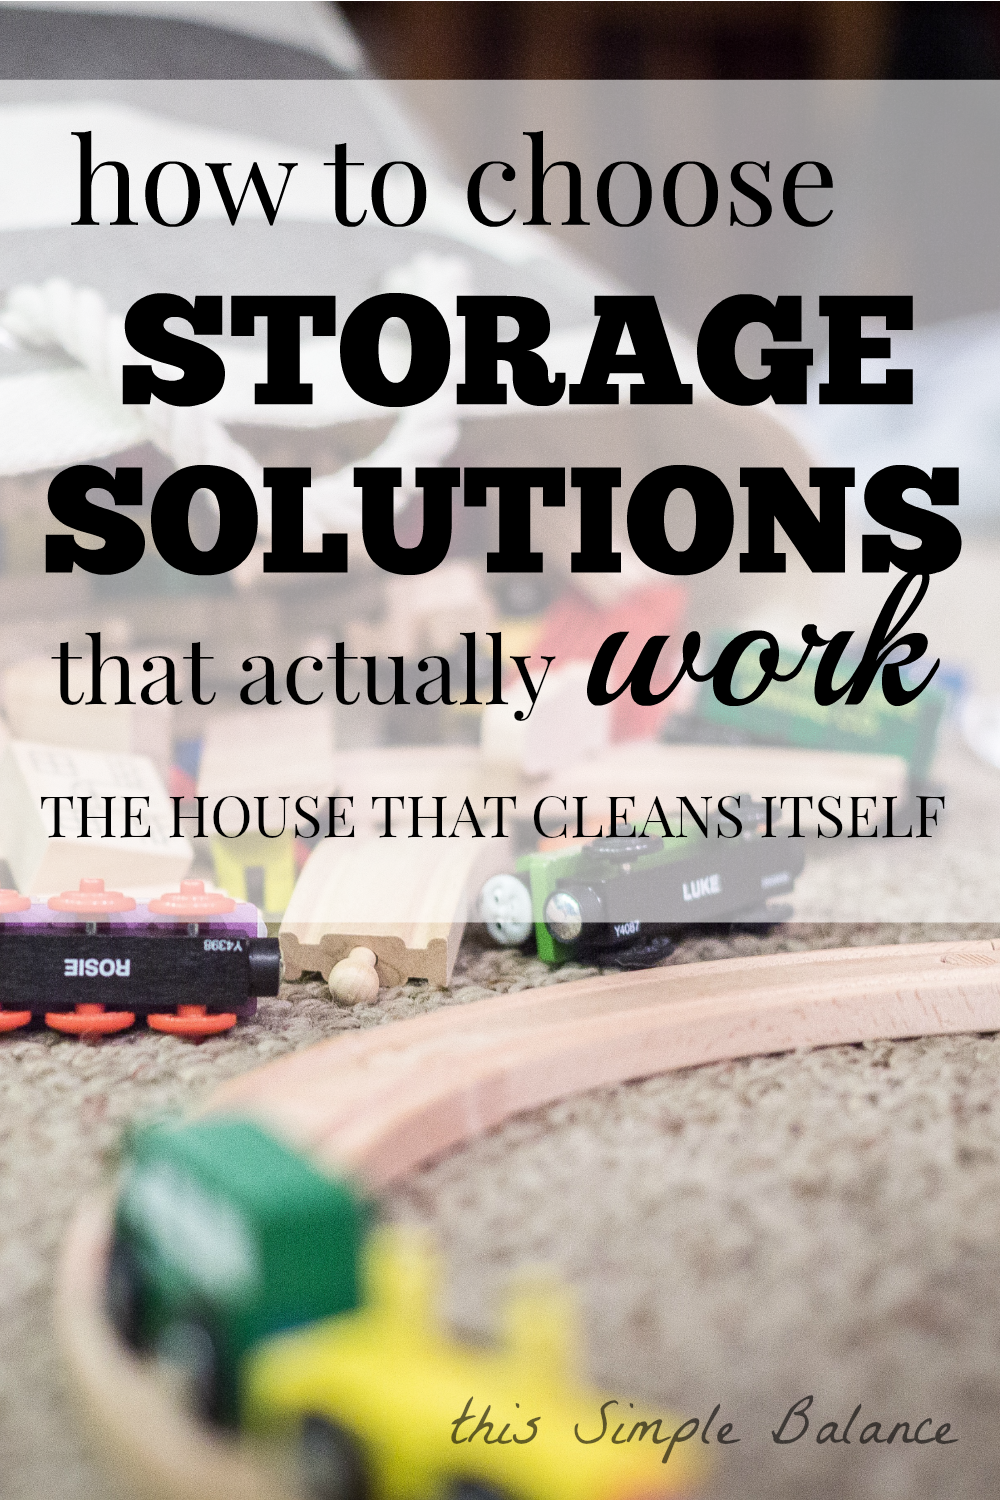 storage solutions that work, the house that cleans itself